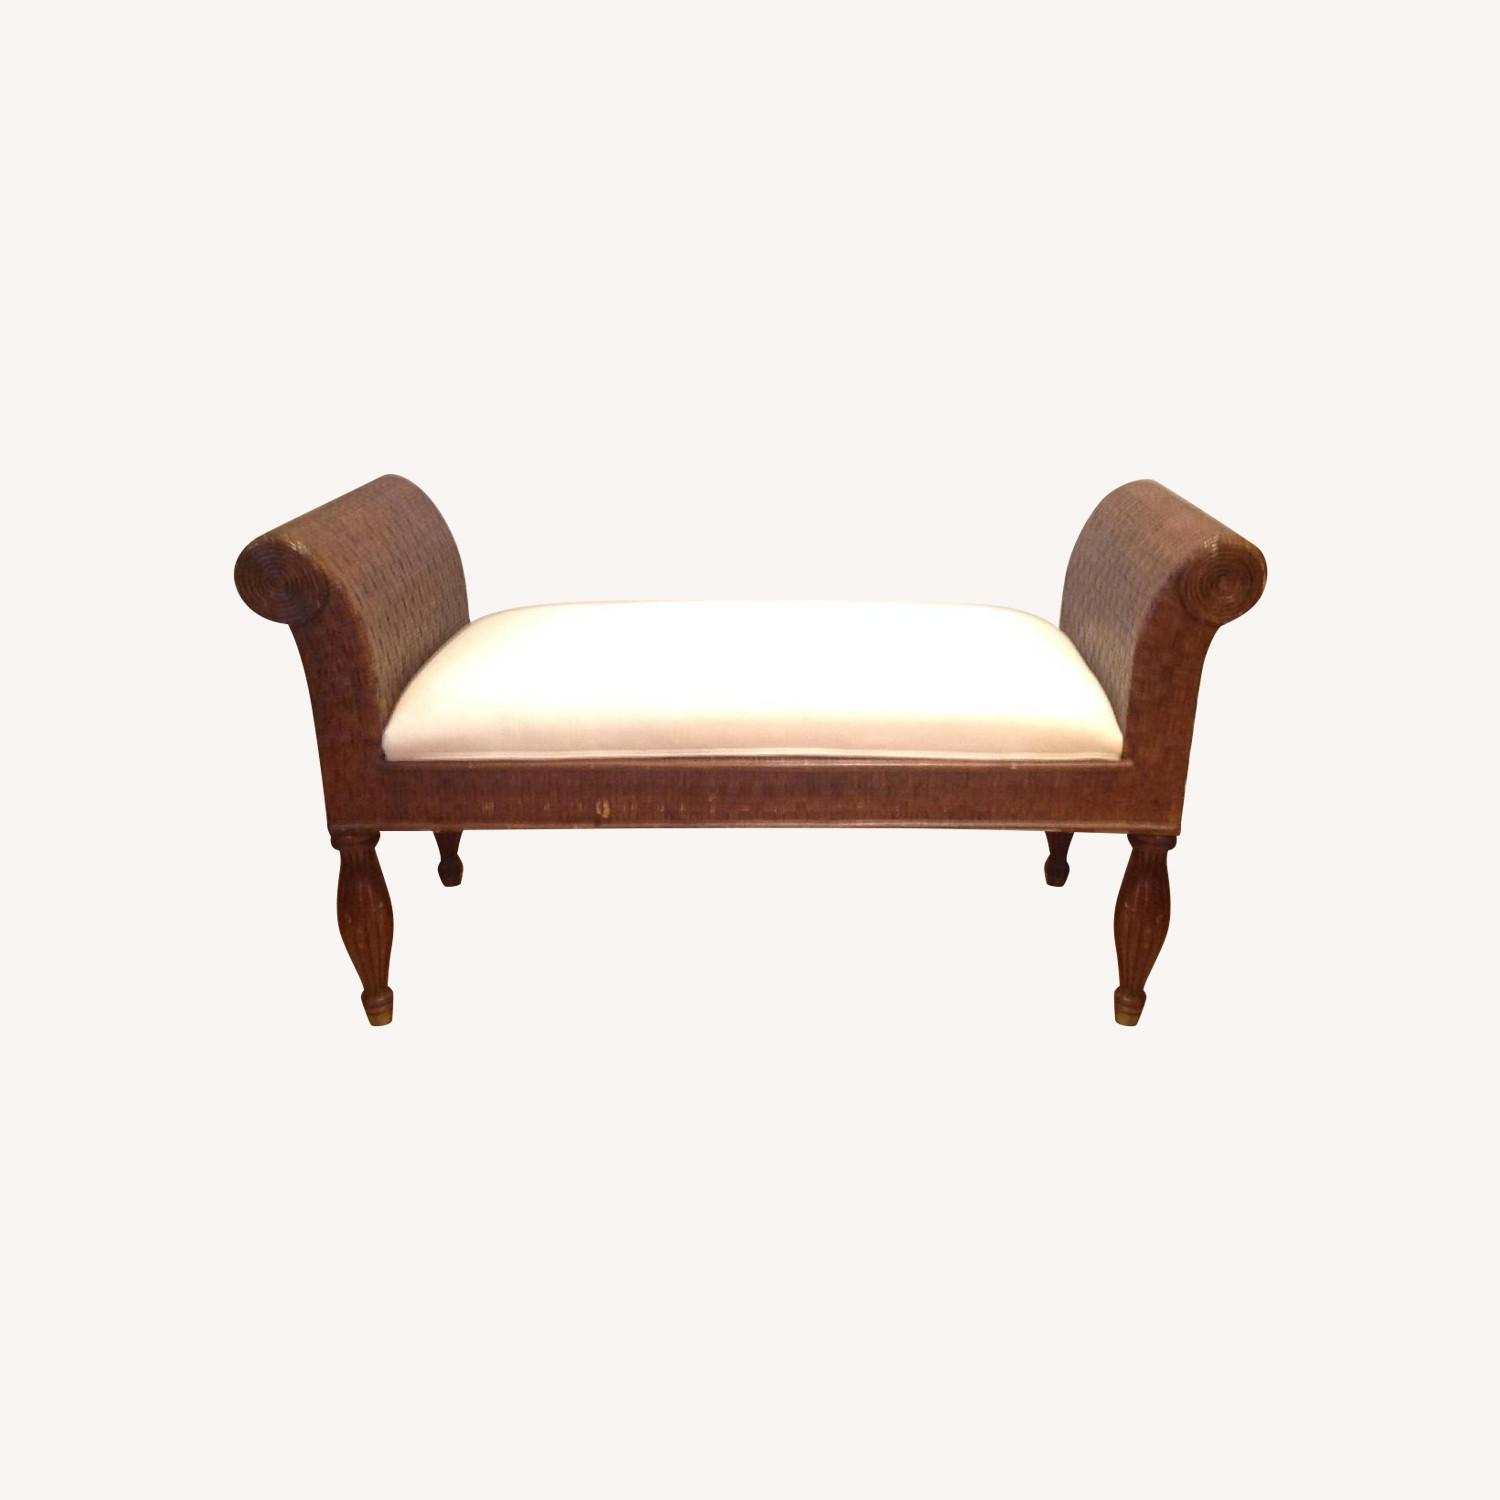 Ethan Allen Wicker Bench - image-0